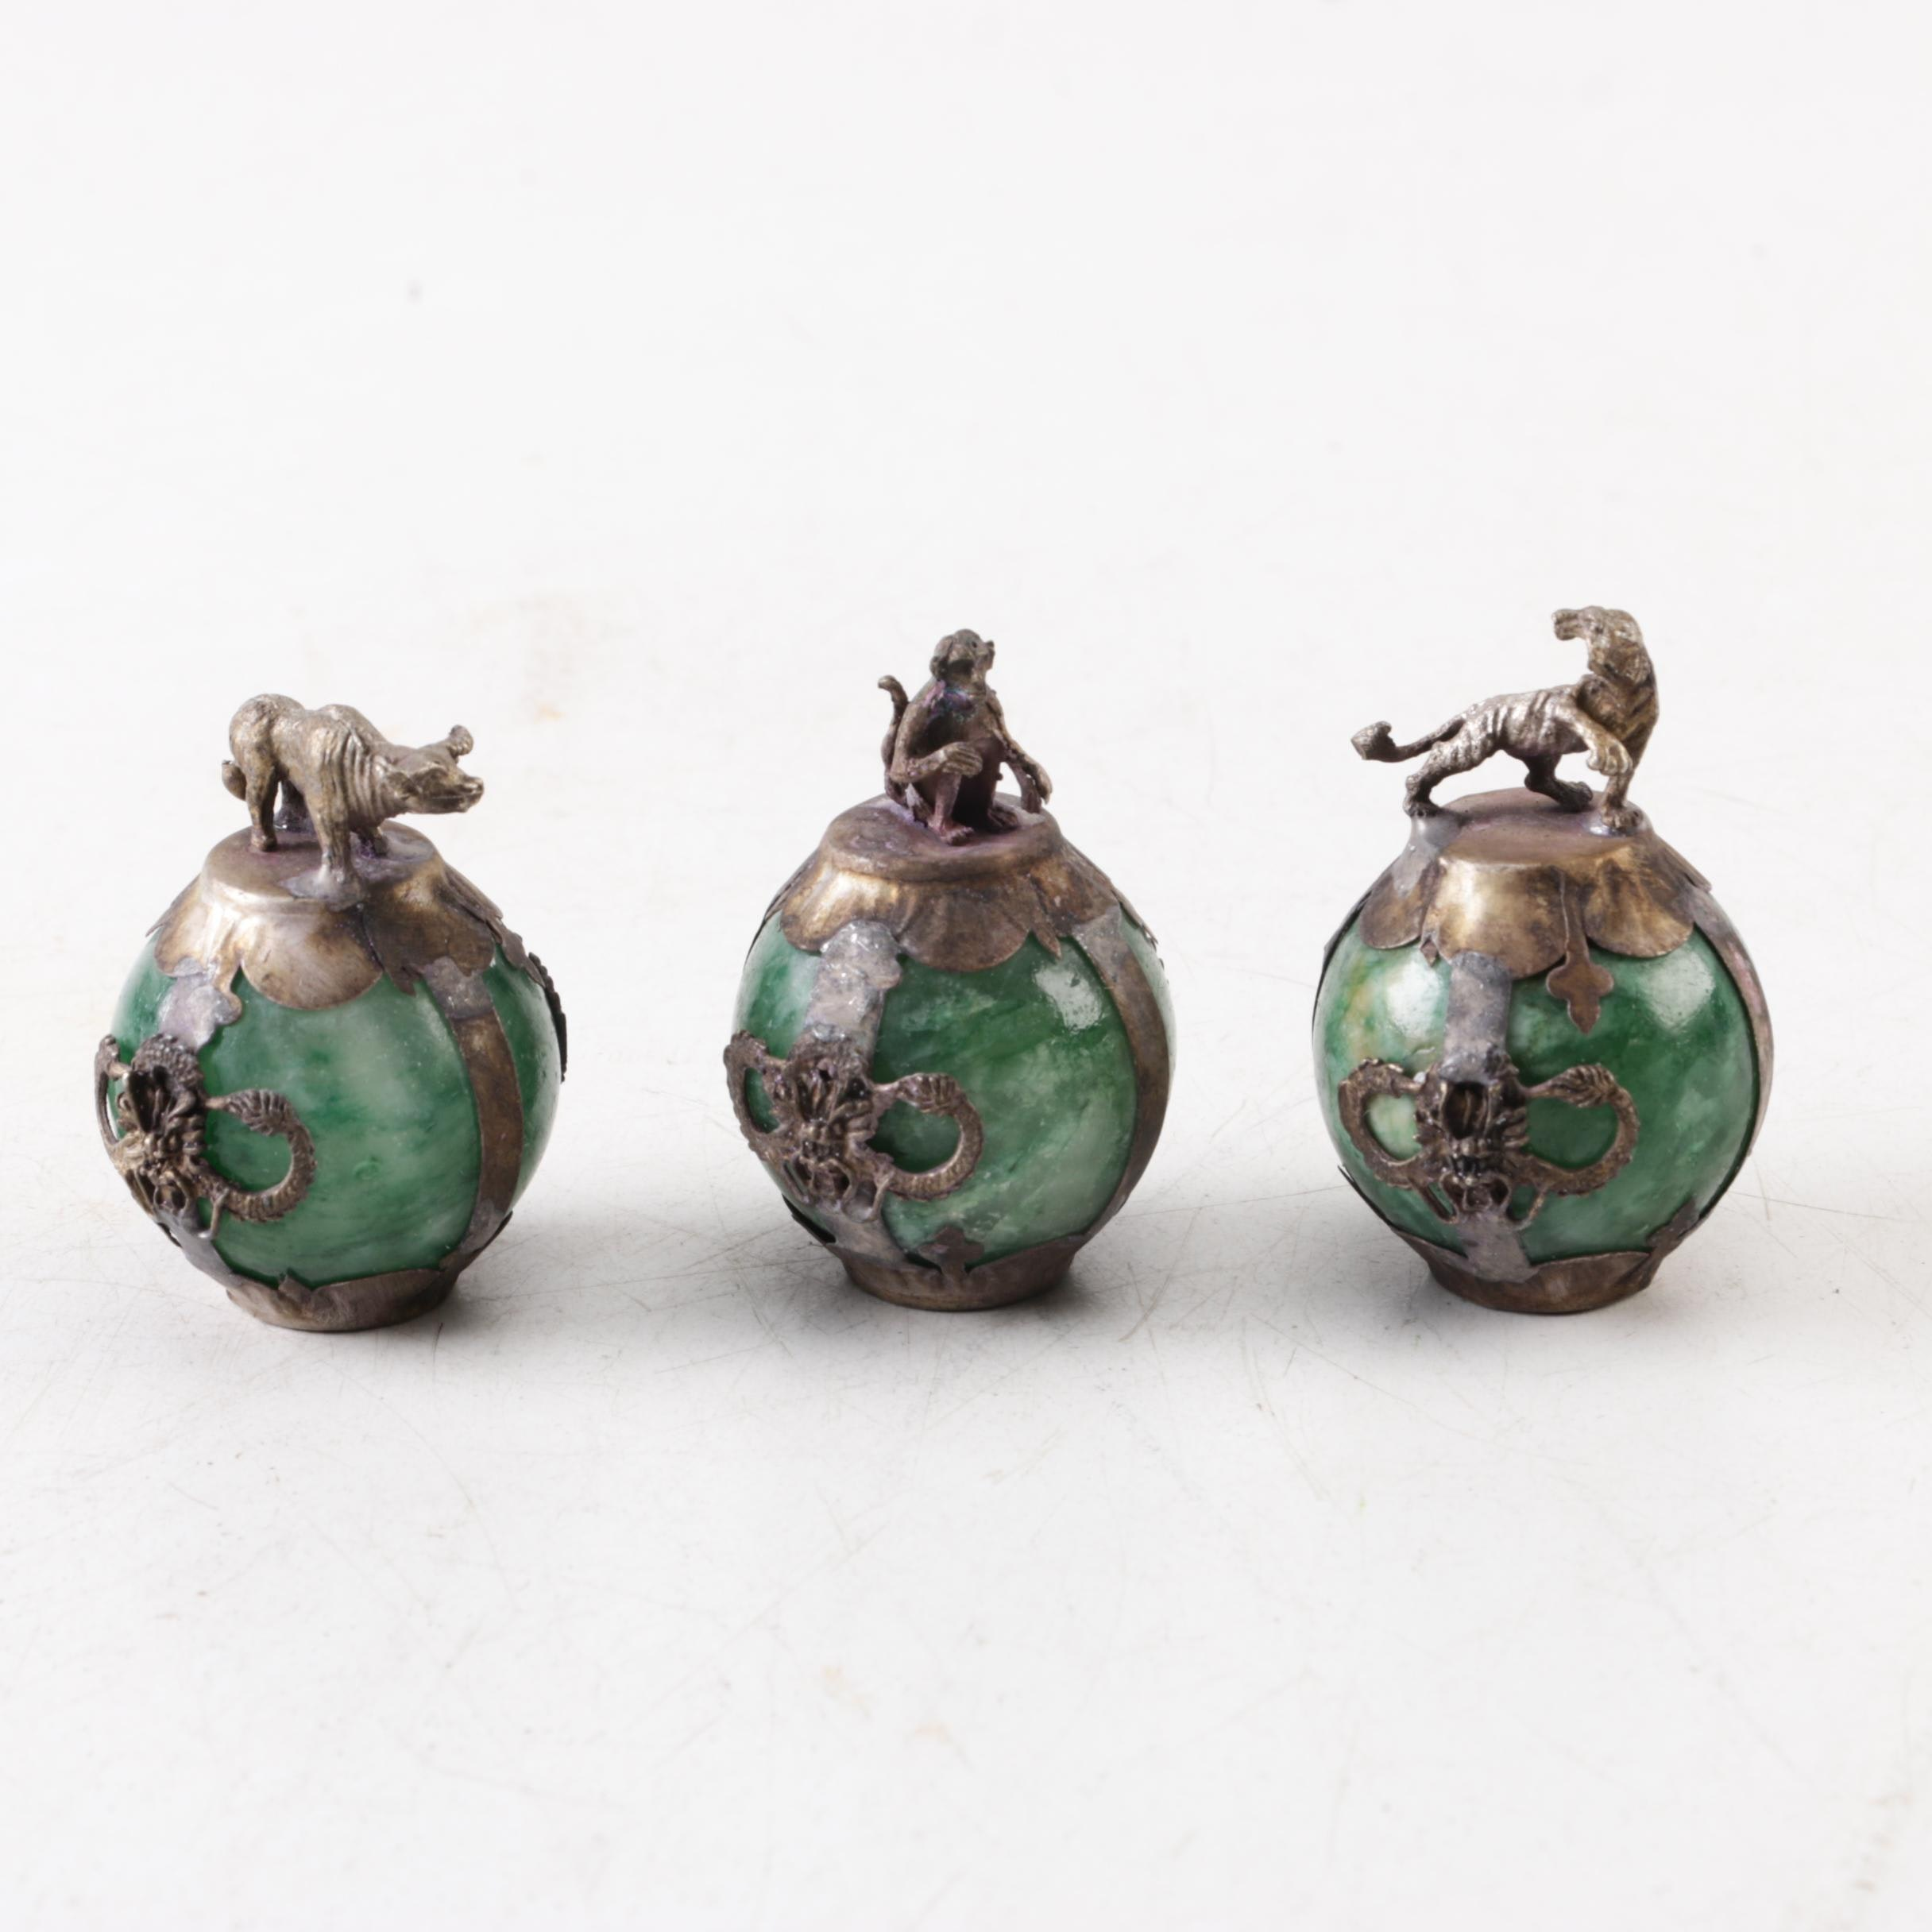 Brass and Calcite Decorative Orbs